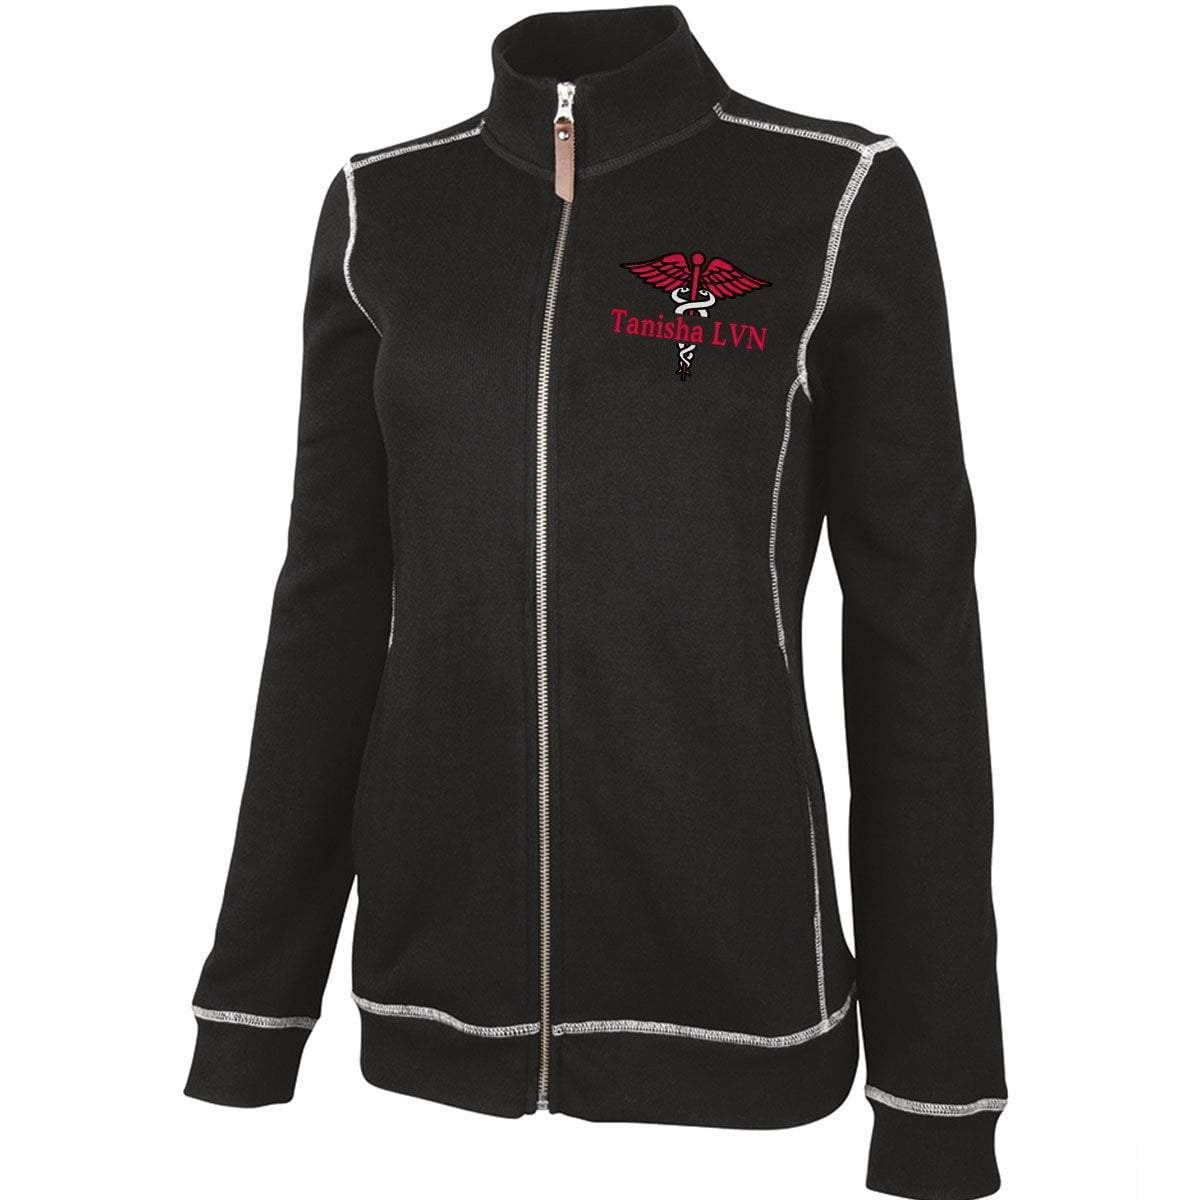 Charles River Apparel jacket Black / XS 5998 | WOMEN'S CONWAY FLATBACK RIB JACKET